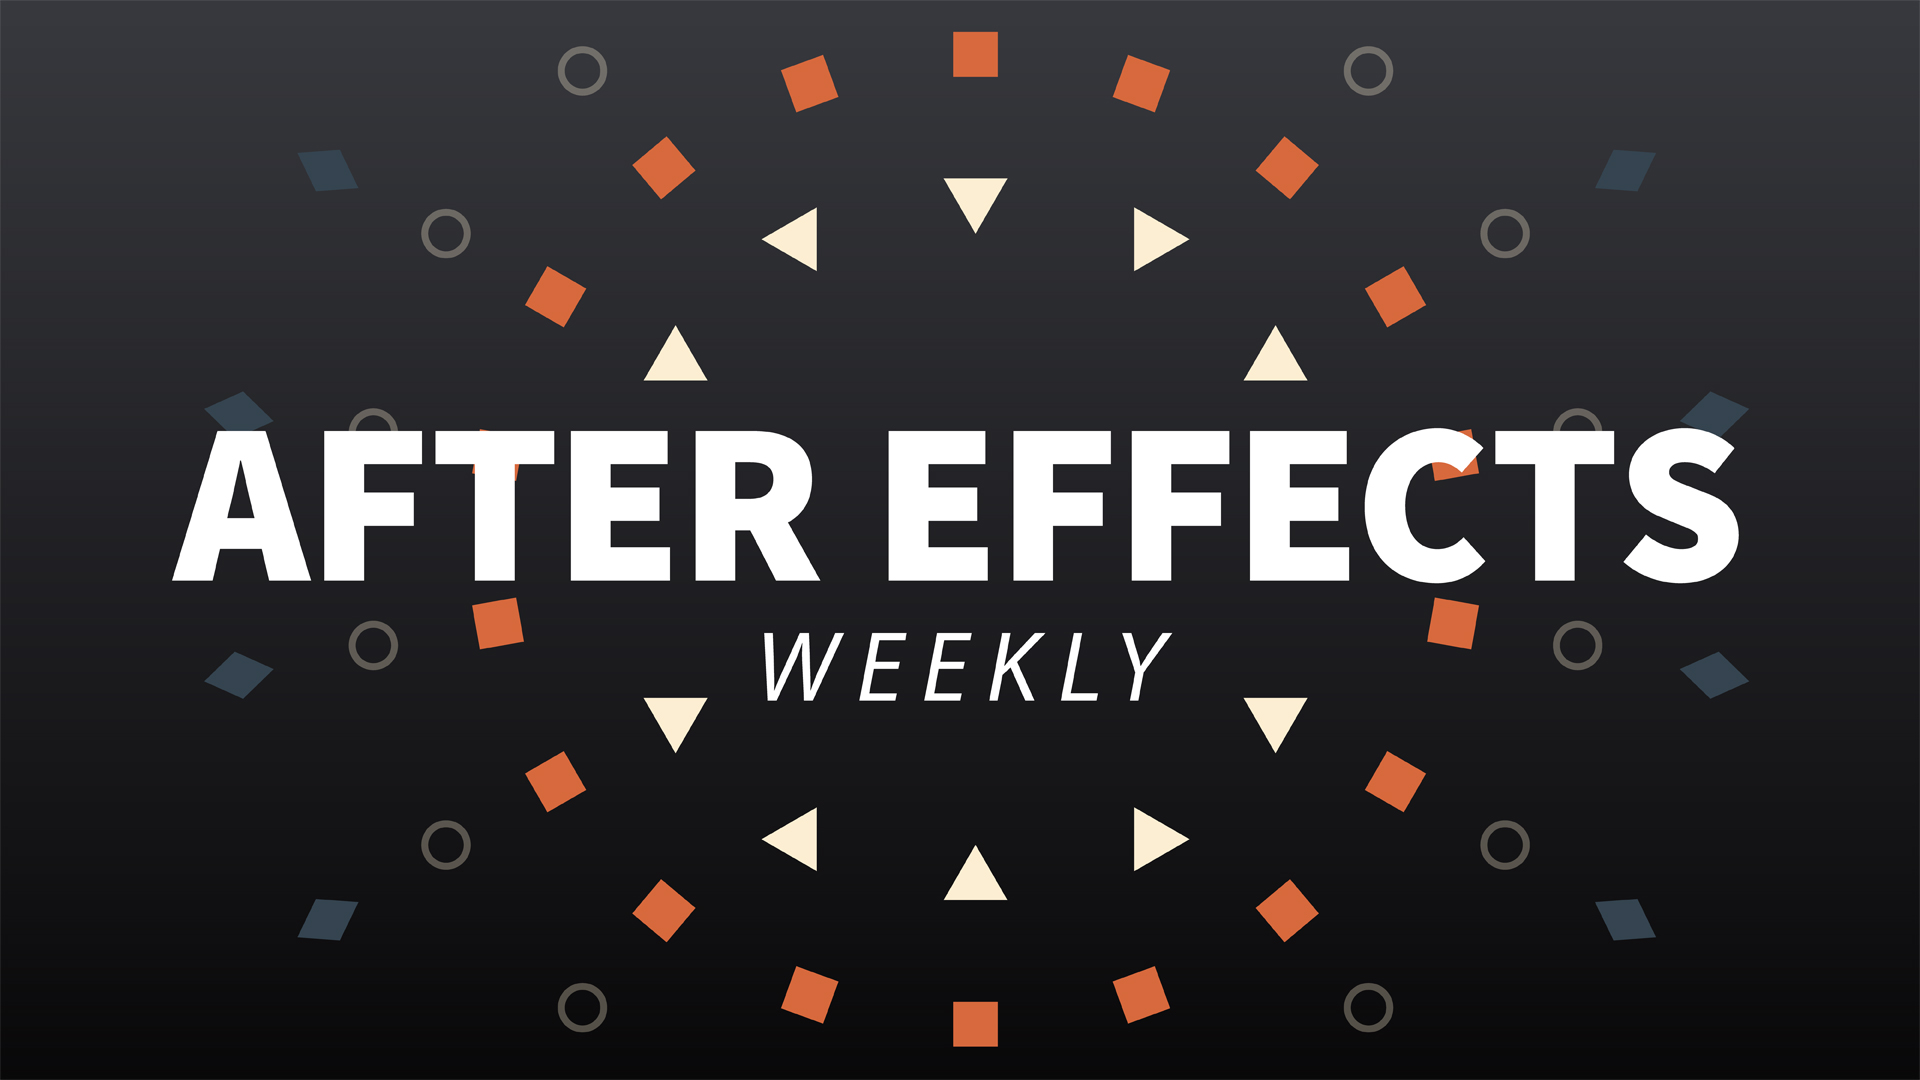 After Effects Weekly